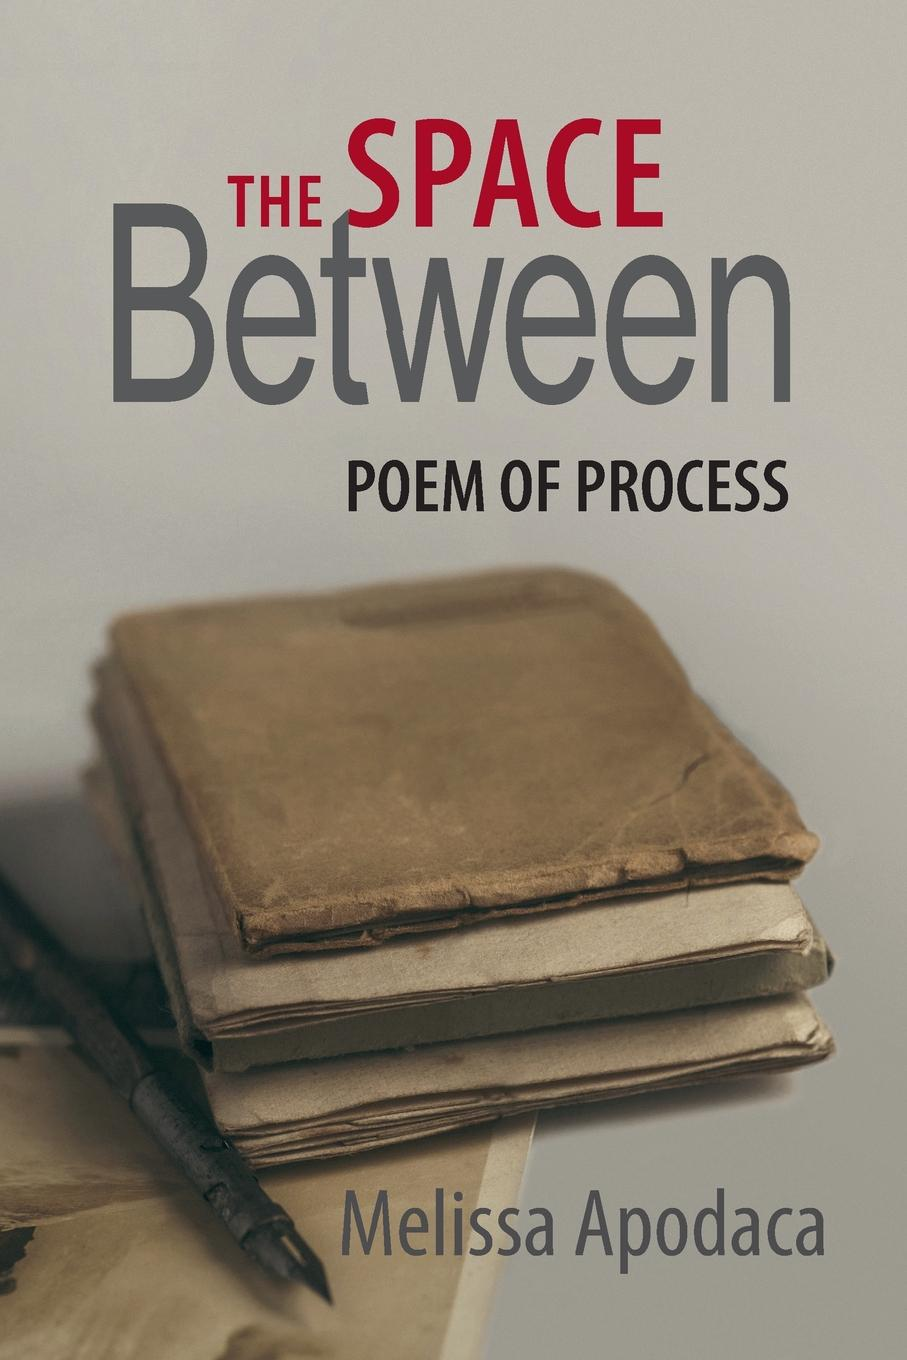 The Space Between. A Poem of Process In THE SPACE BETWEEN, Melissa Apodaca has created a narrative poem...